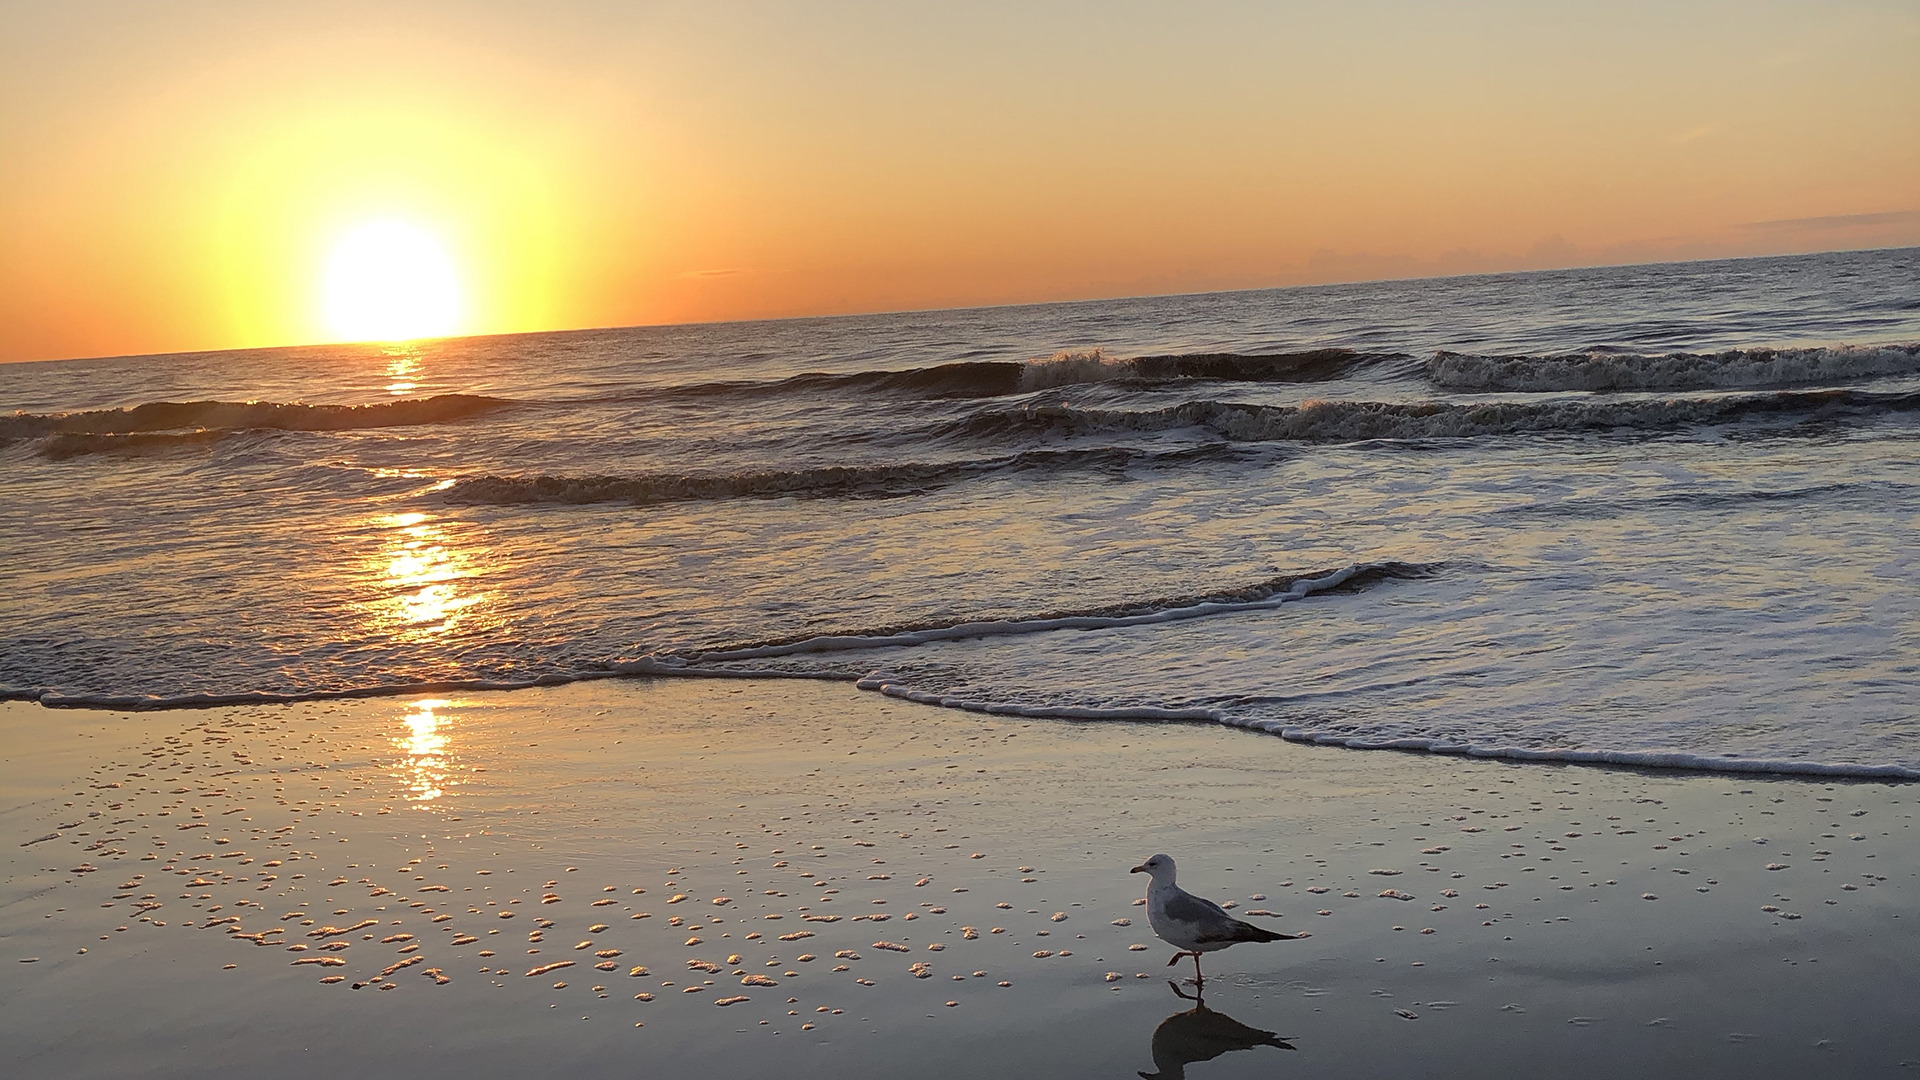 Sunrise-Atlantic Ocean - Seagull East Beach on St. Simons Island